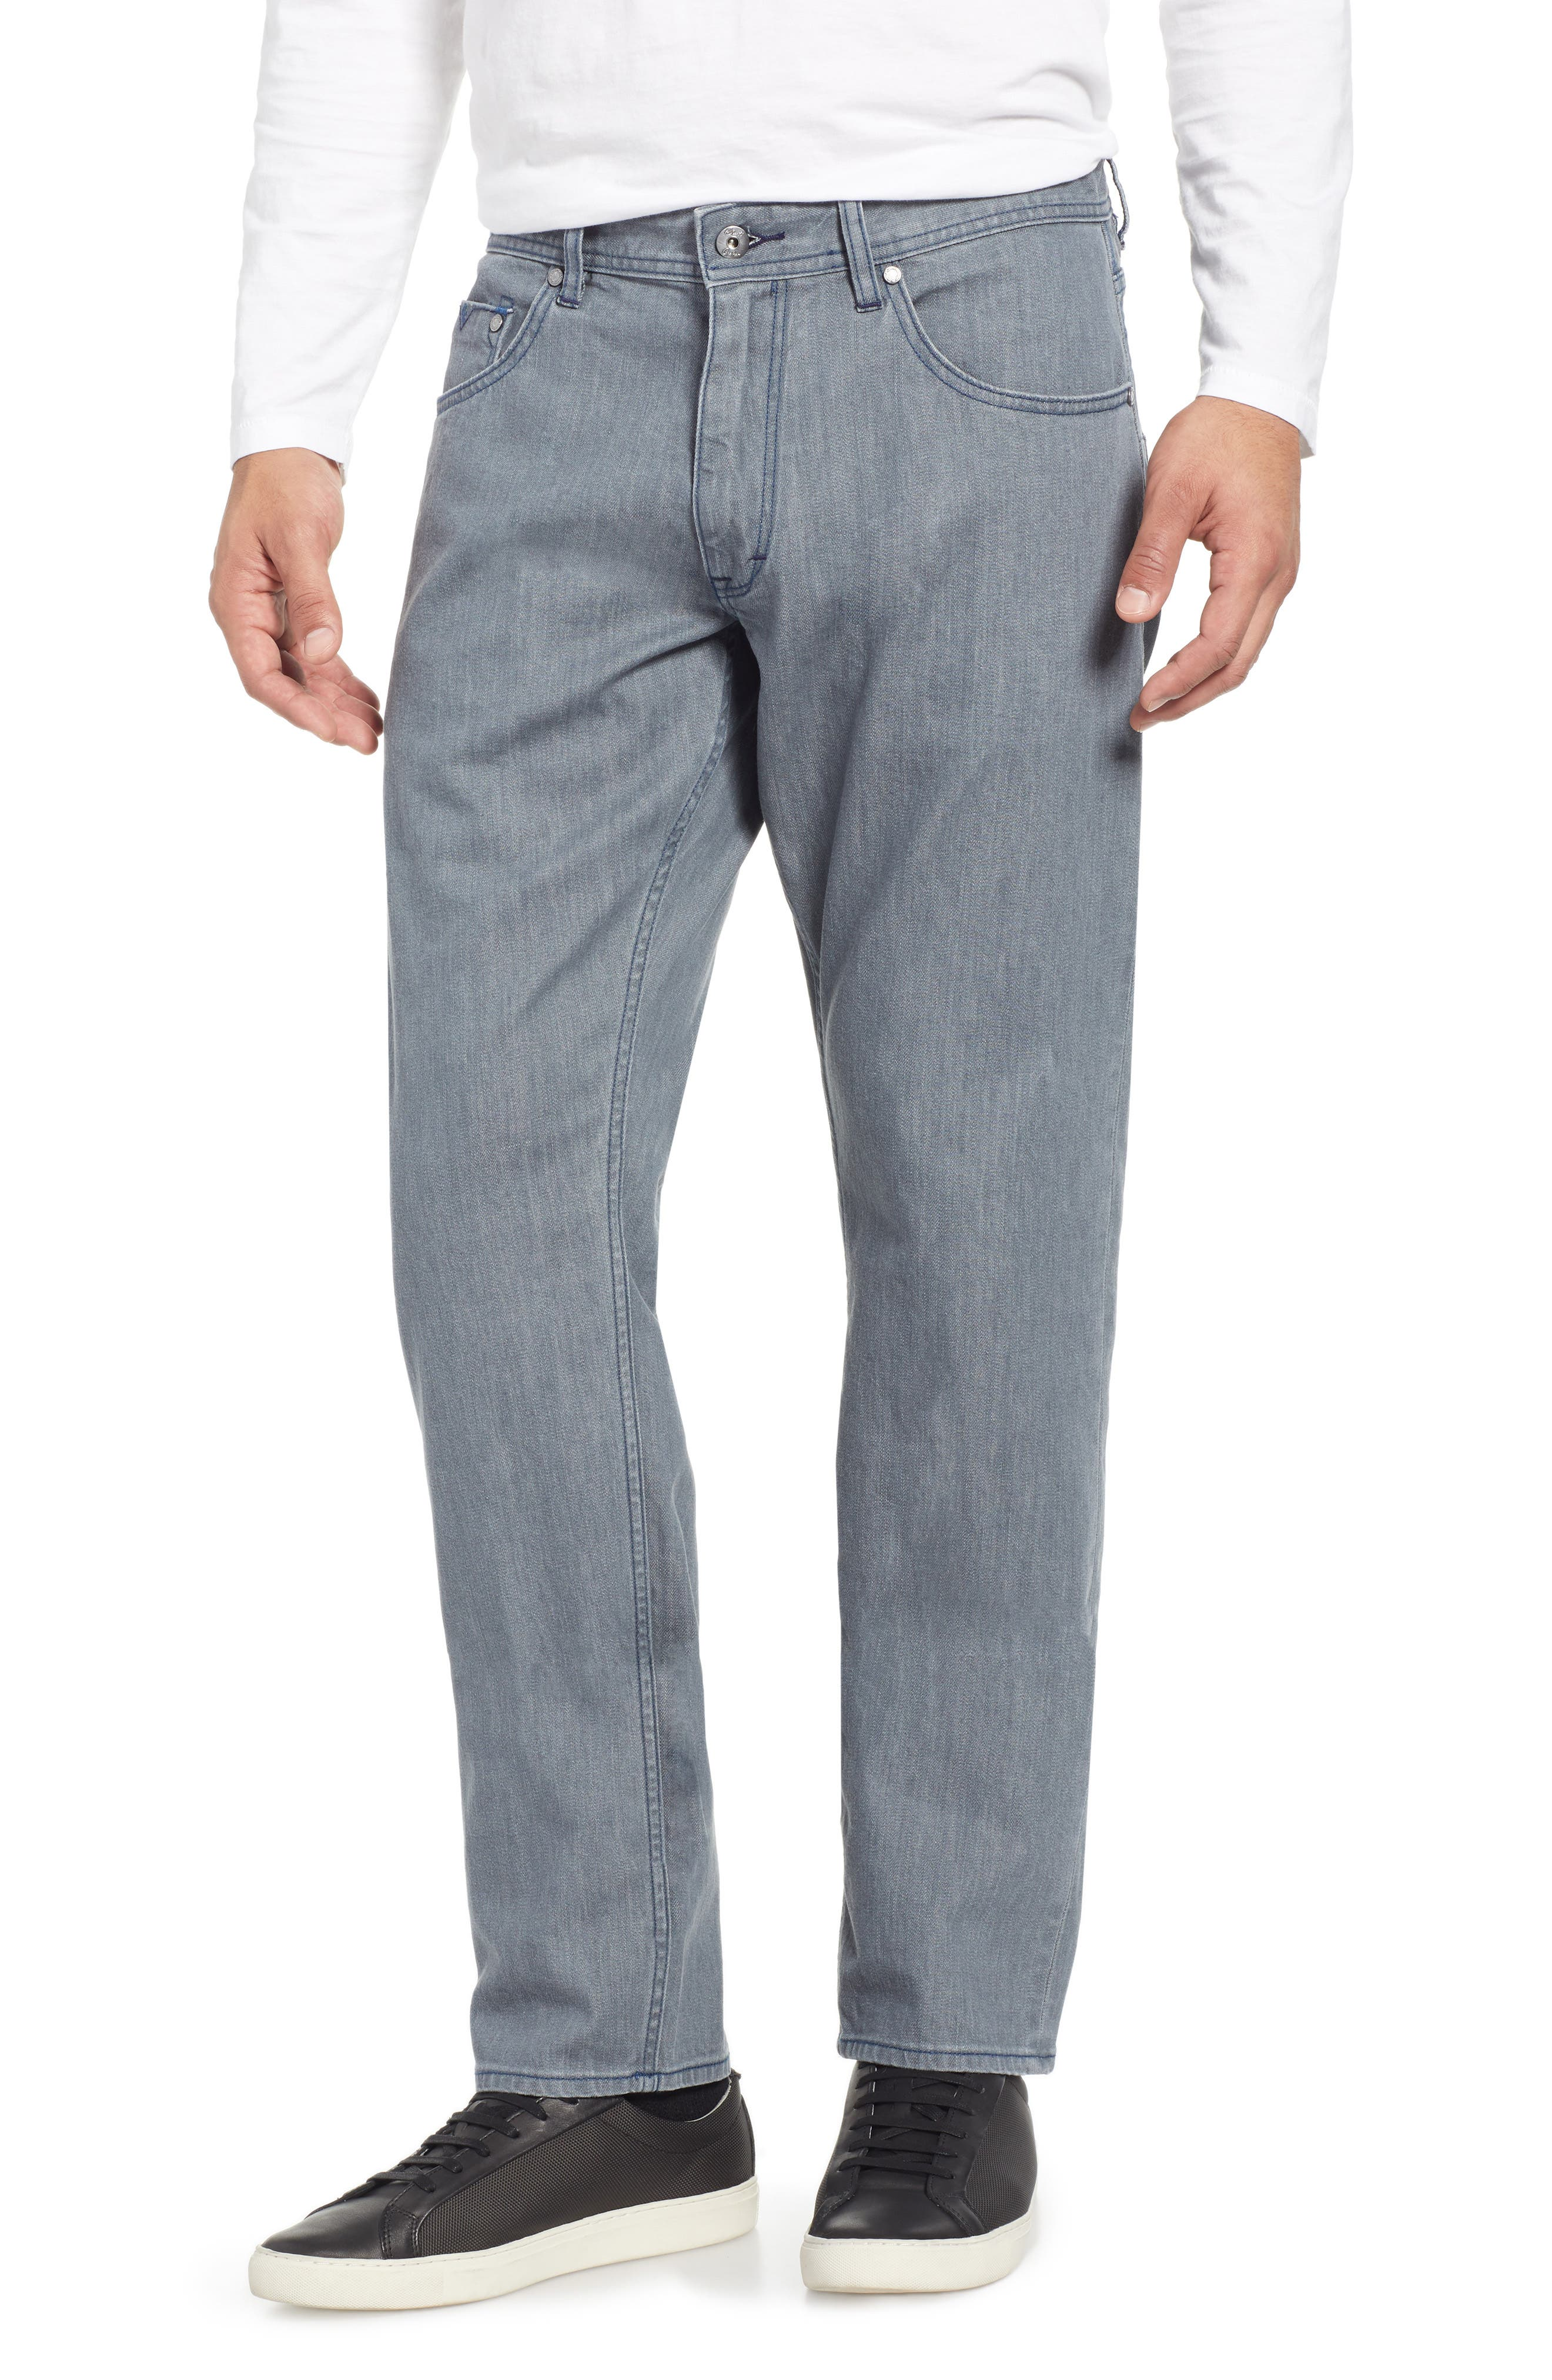 Bray Tailored Straight Leg Jeans,                         Main,                         color, GREY